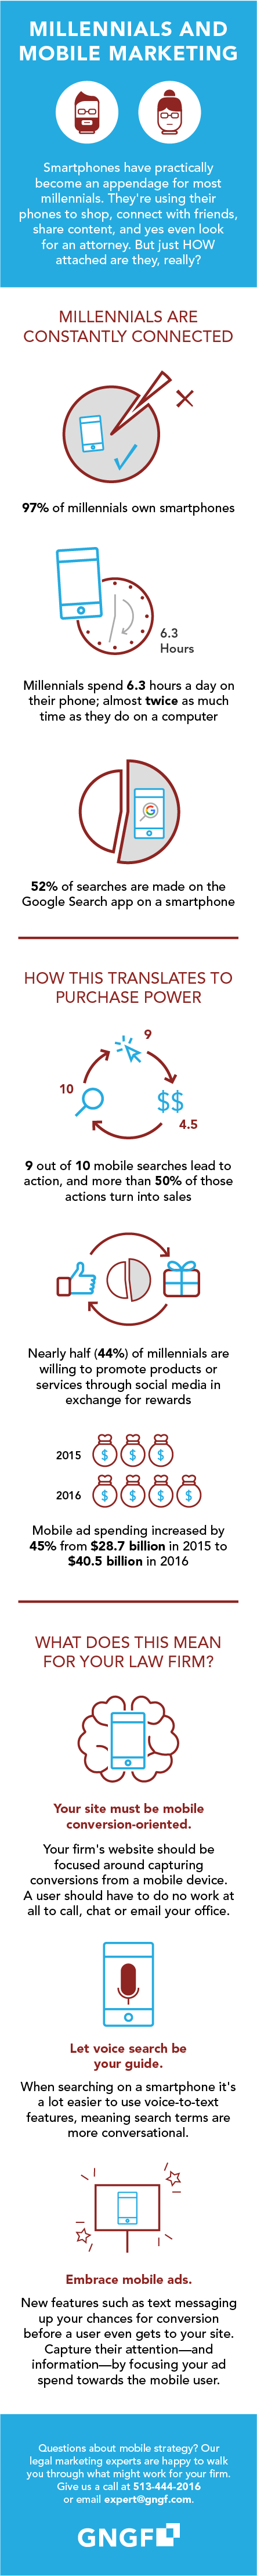 Mobile_Millennials-and-Mobile-Marketing